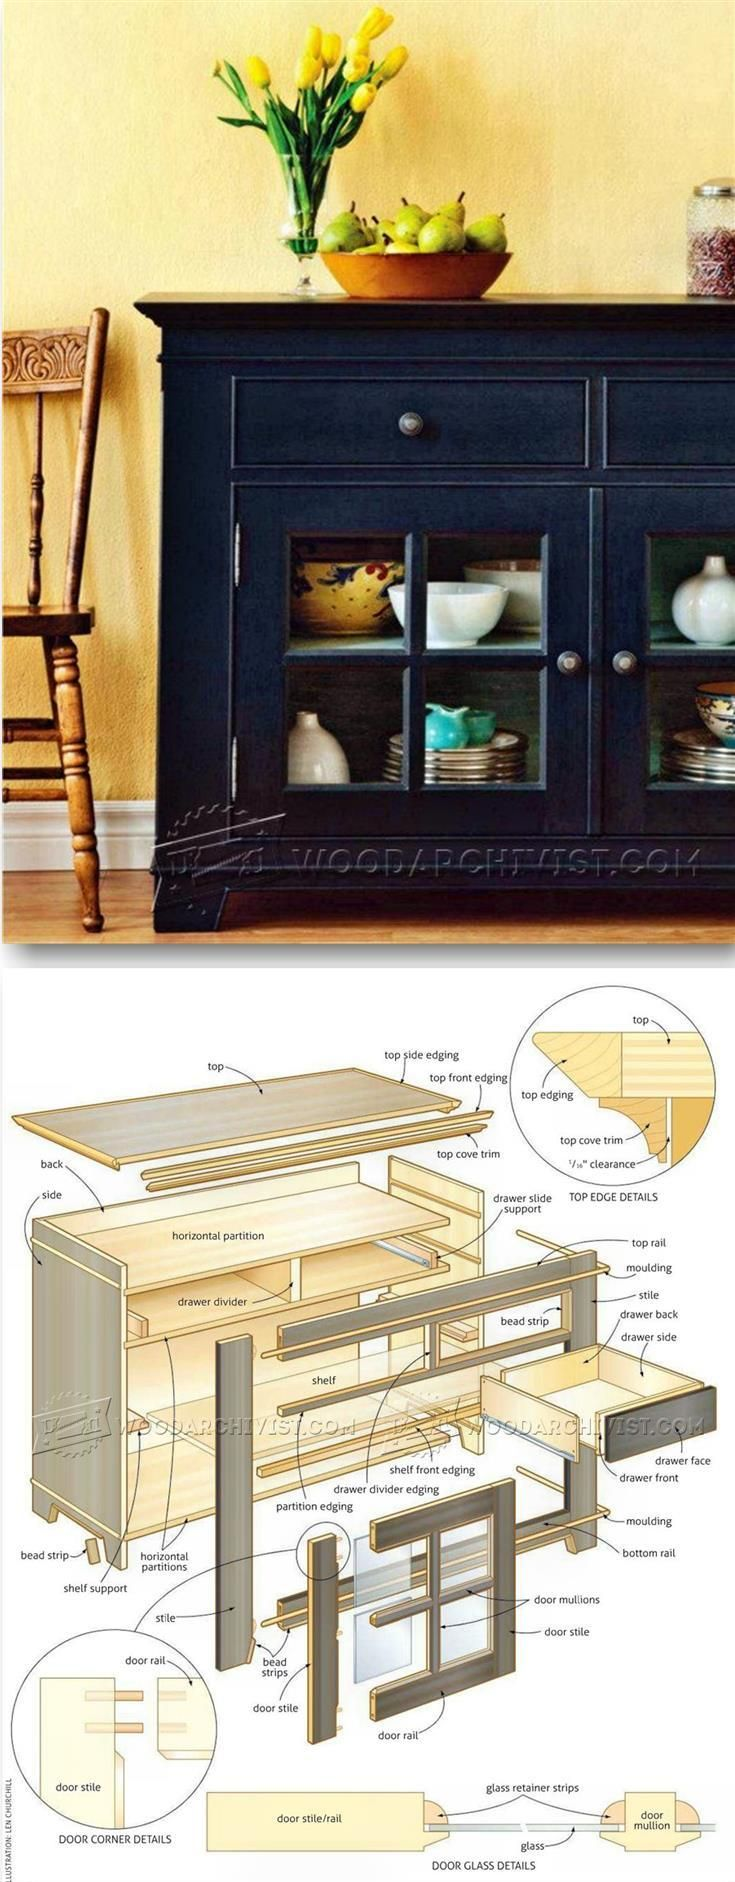 Woodworking bench diy superb japanese modern shop interior design - 675 Best Woodworking Shop Images On Pinterest Projects Woodworking Plans And Wood Projects